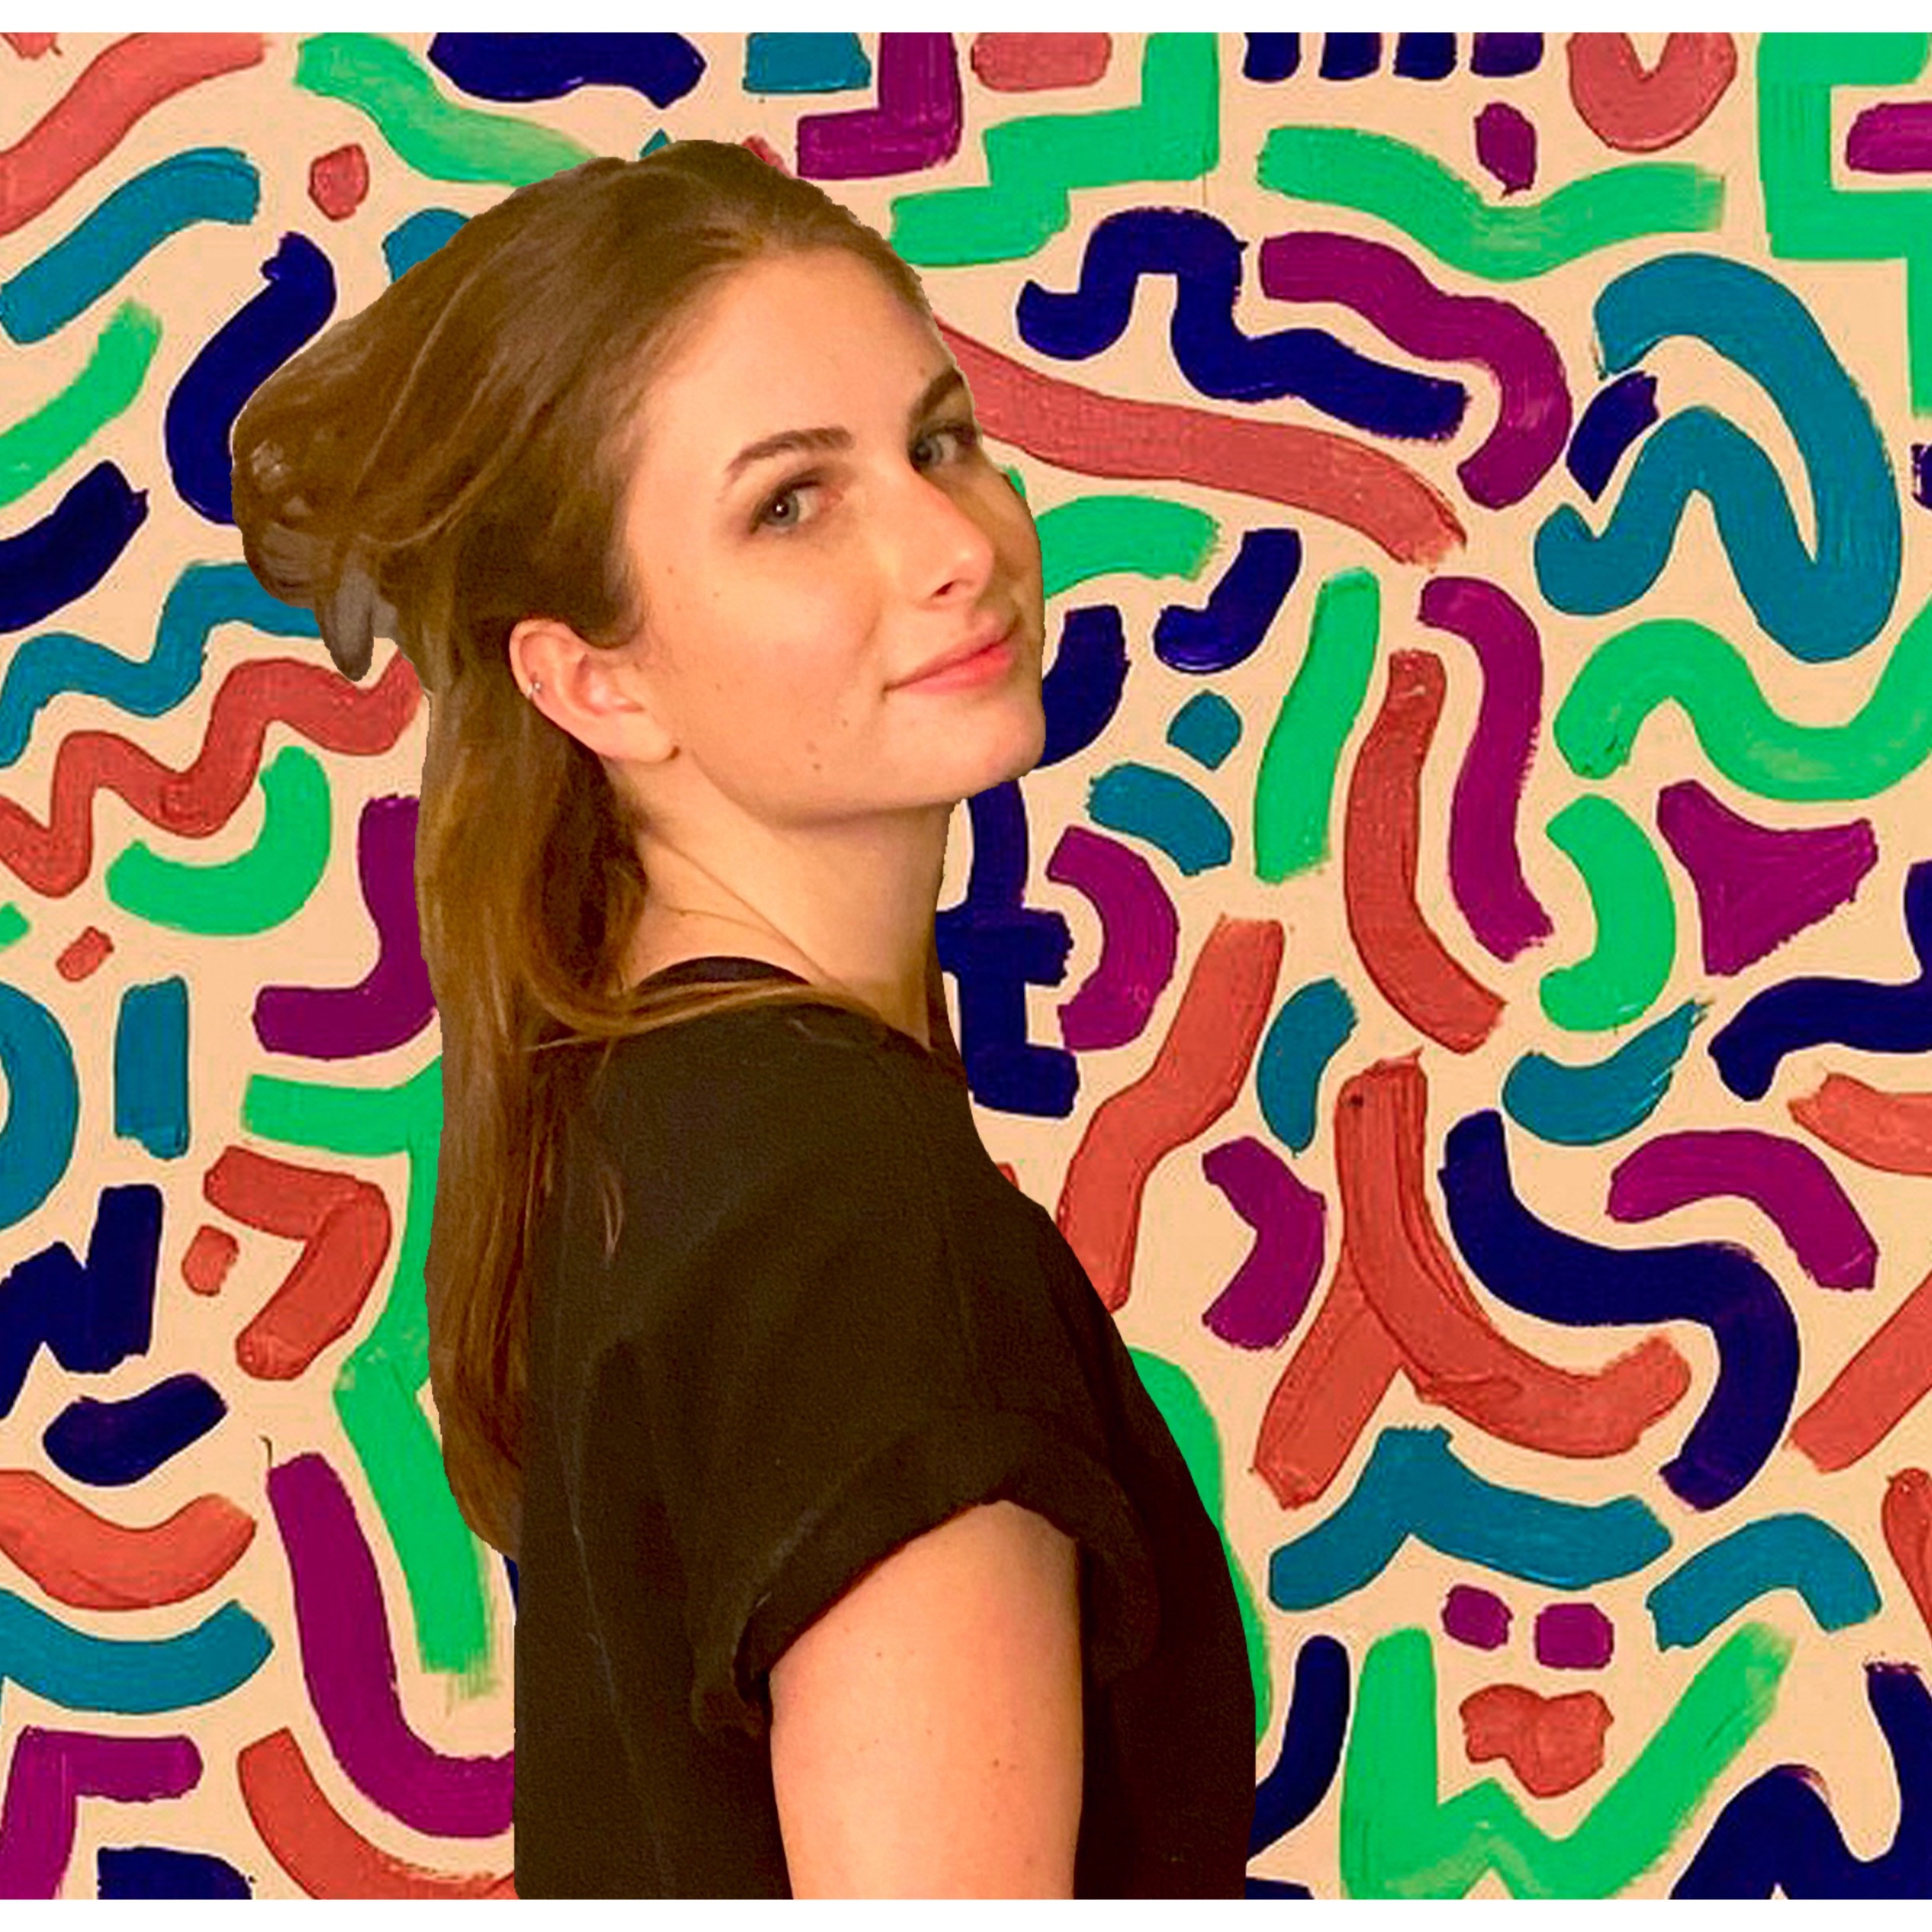 Gwen Goldman standing in front of a background full of colorful lines.